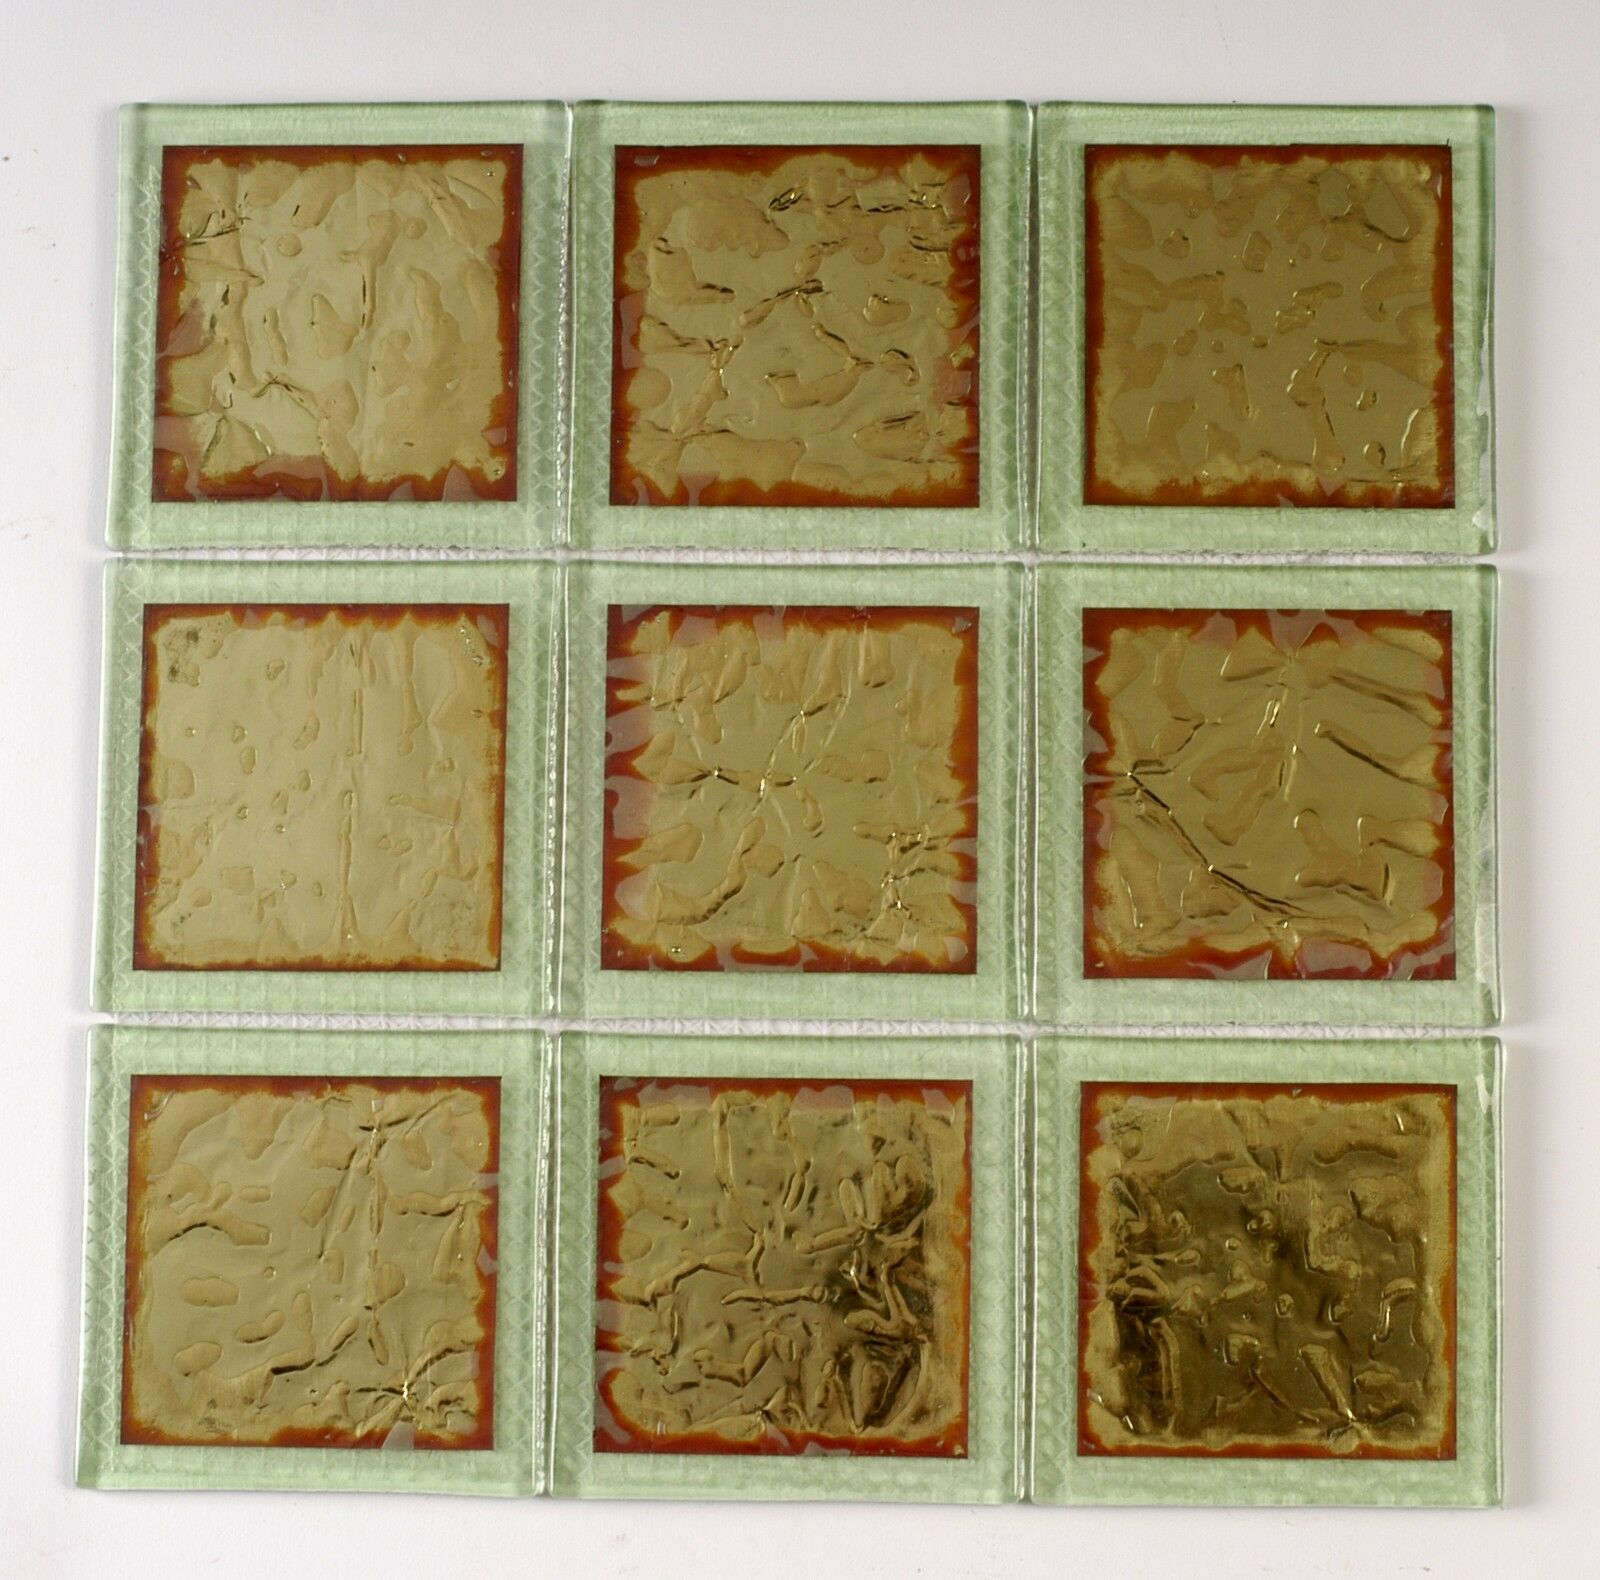 10 SQFT Glass Tiles on Mesh Mount FiROT Copper Grün - FREE SHIP IN USA